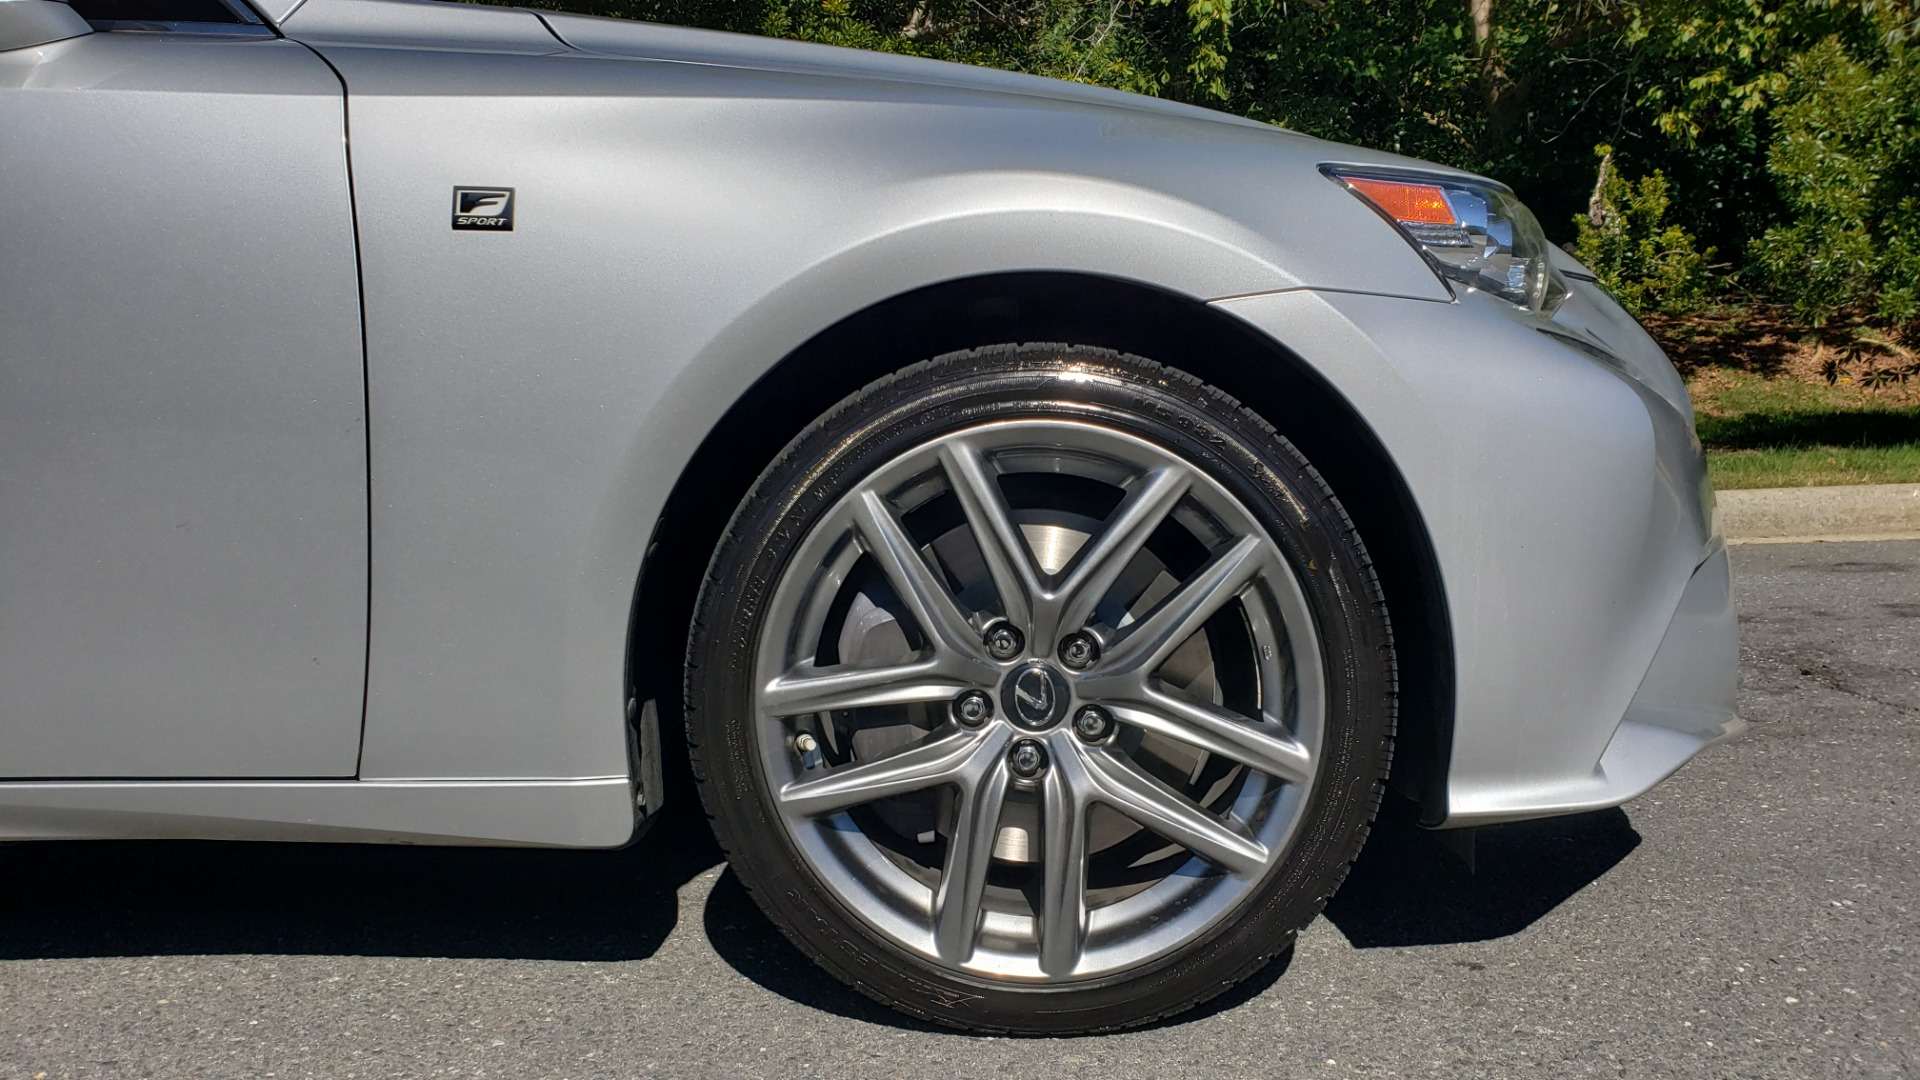 Used 2015 Lexus IS 350 F-SPORT / AWD / NAV / SUNROOF / BSM / REARVIEW for sale Sold at Formula Imports in Charlotte NC 28227 83